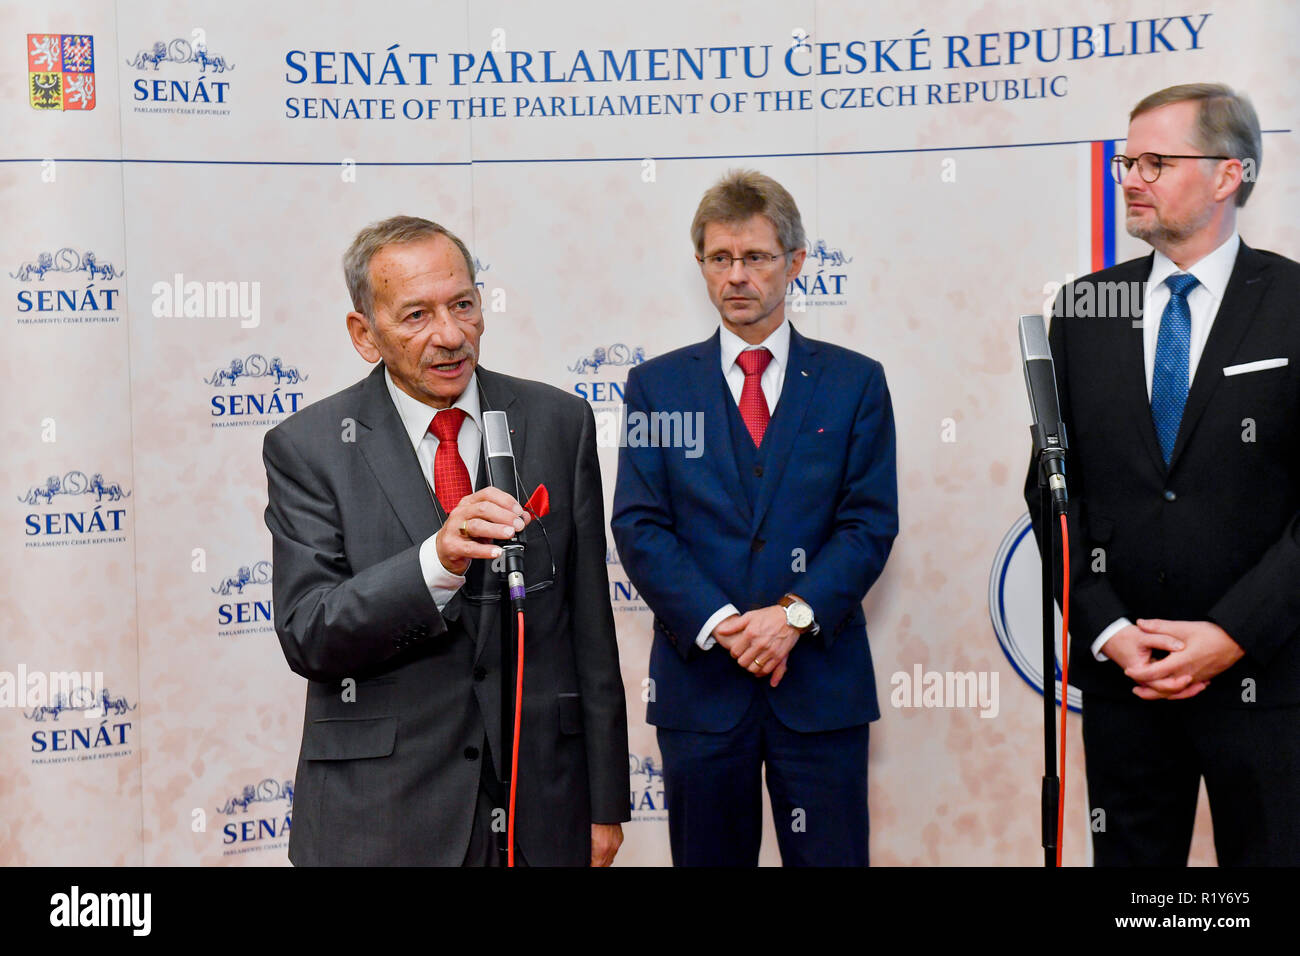 Prague, Czech Republic. 14th Nov, 2018.    FILE PHOTO   Senate calls PM Babis's stay in govt till Capi hnizdo subsidy fraud is investigated unacceptable over new suspicions. Govt CSSD voted for this, too in Prague, Czech Republic, November 15, 2018. L-R Jaroslav Kubera, Milos Vystrcil and Petr Fiala all of The Civic Democratic Party (ODS). Credit: Vit Simanek/CTK Photo/Alamy Live News - Stock Image